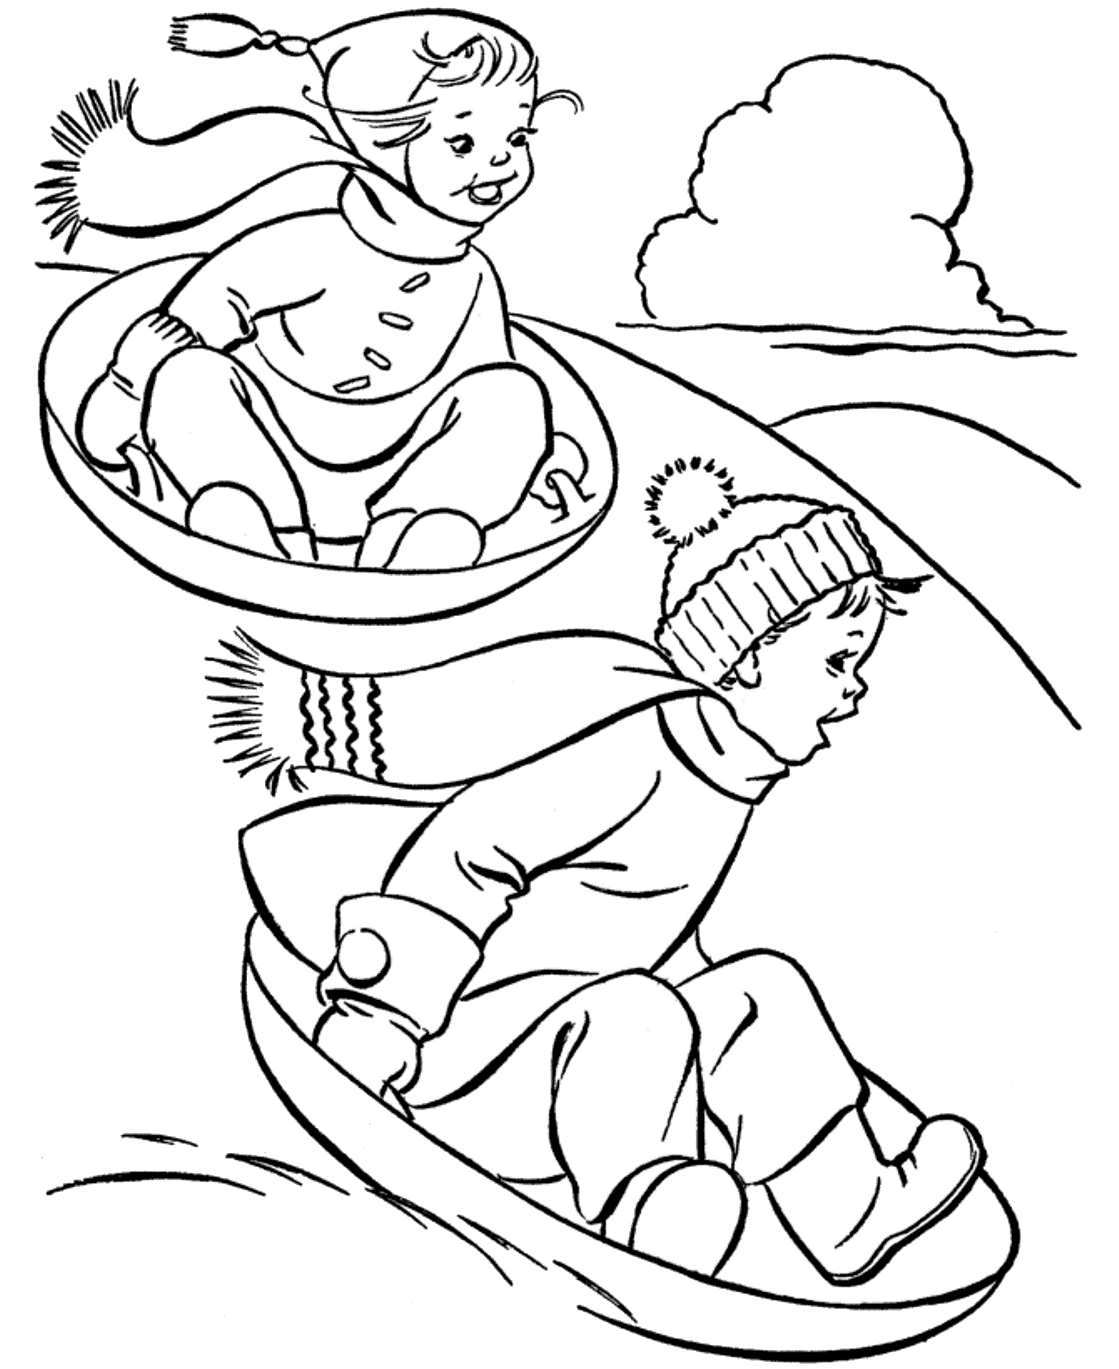 Sports Photograph Coloring Pages Kids: Winter Sports ...